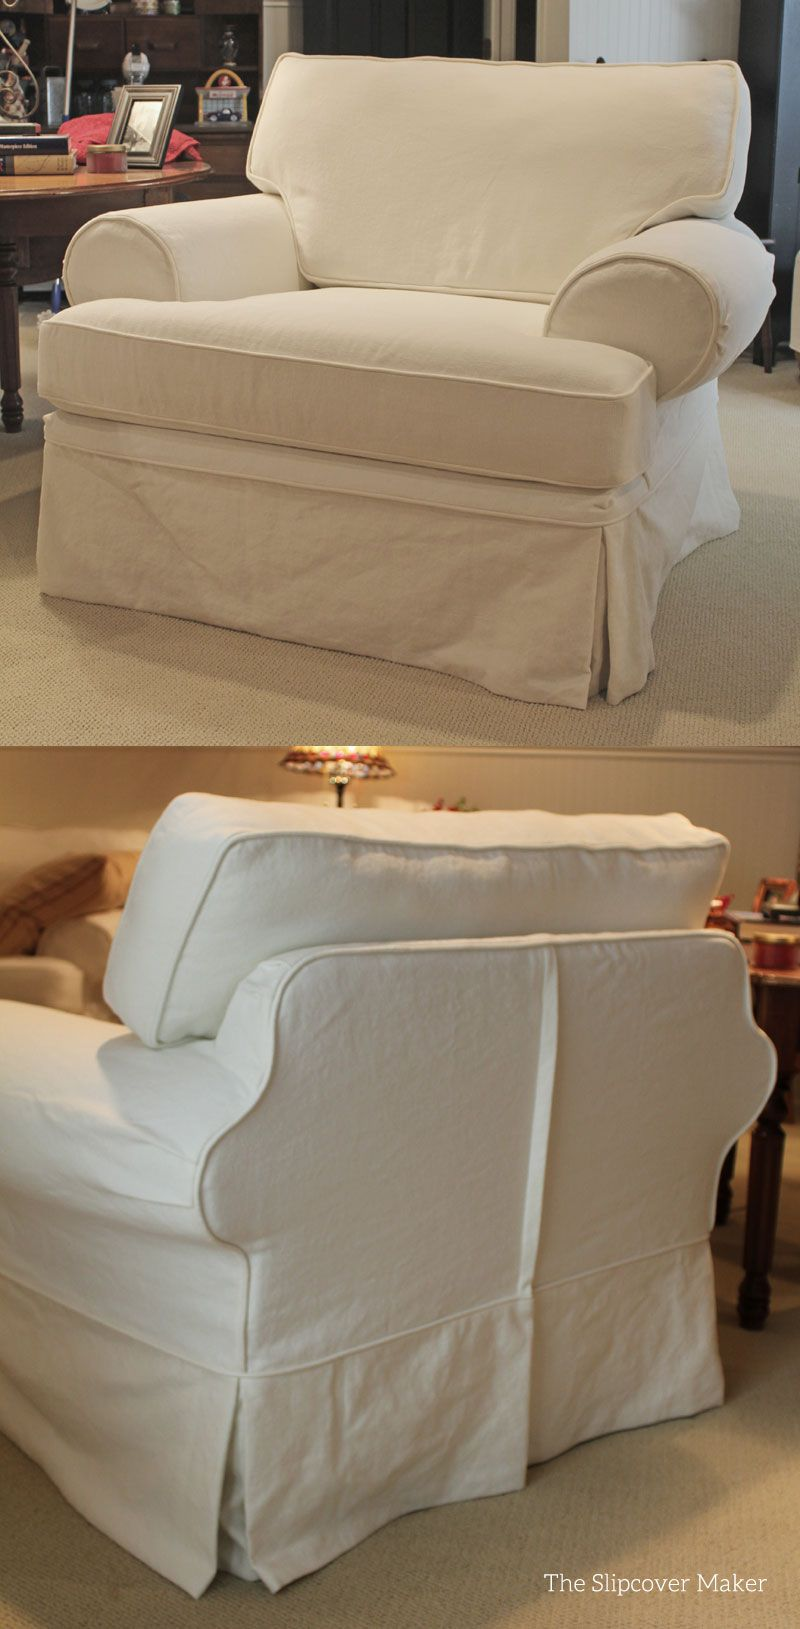 Slipcovers for big rolled arm chairs go on easier with a center